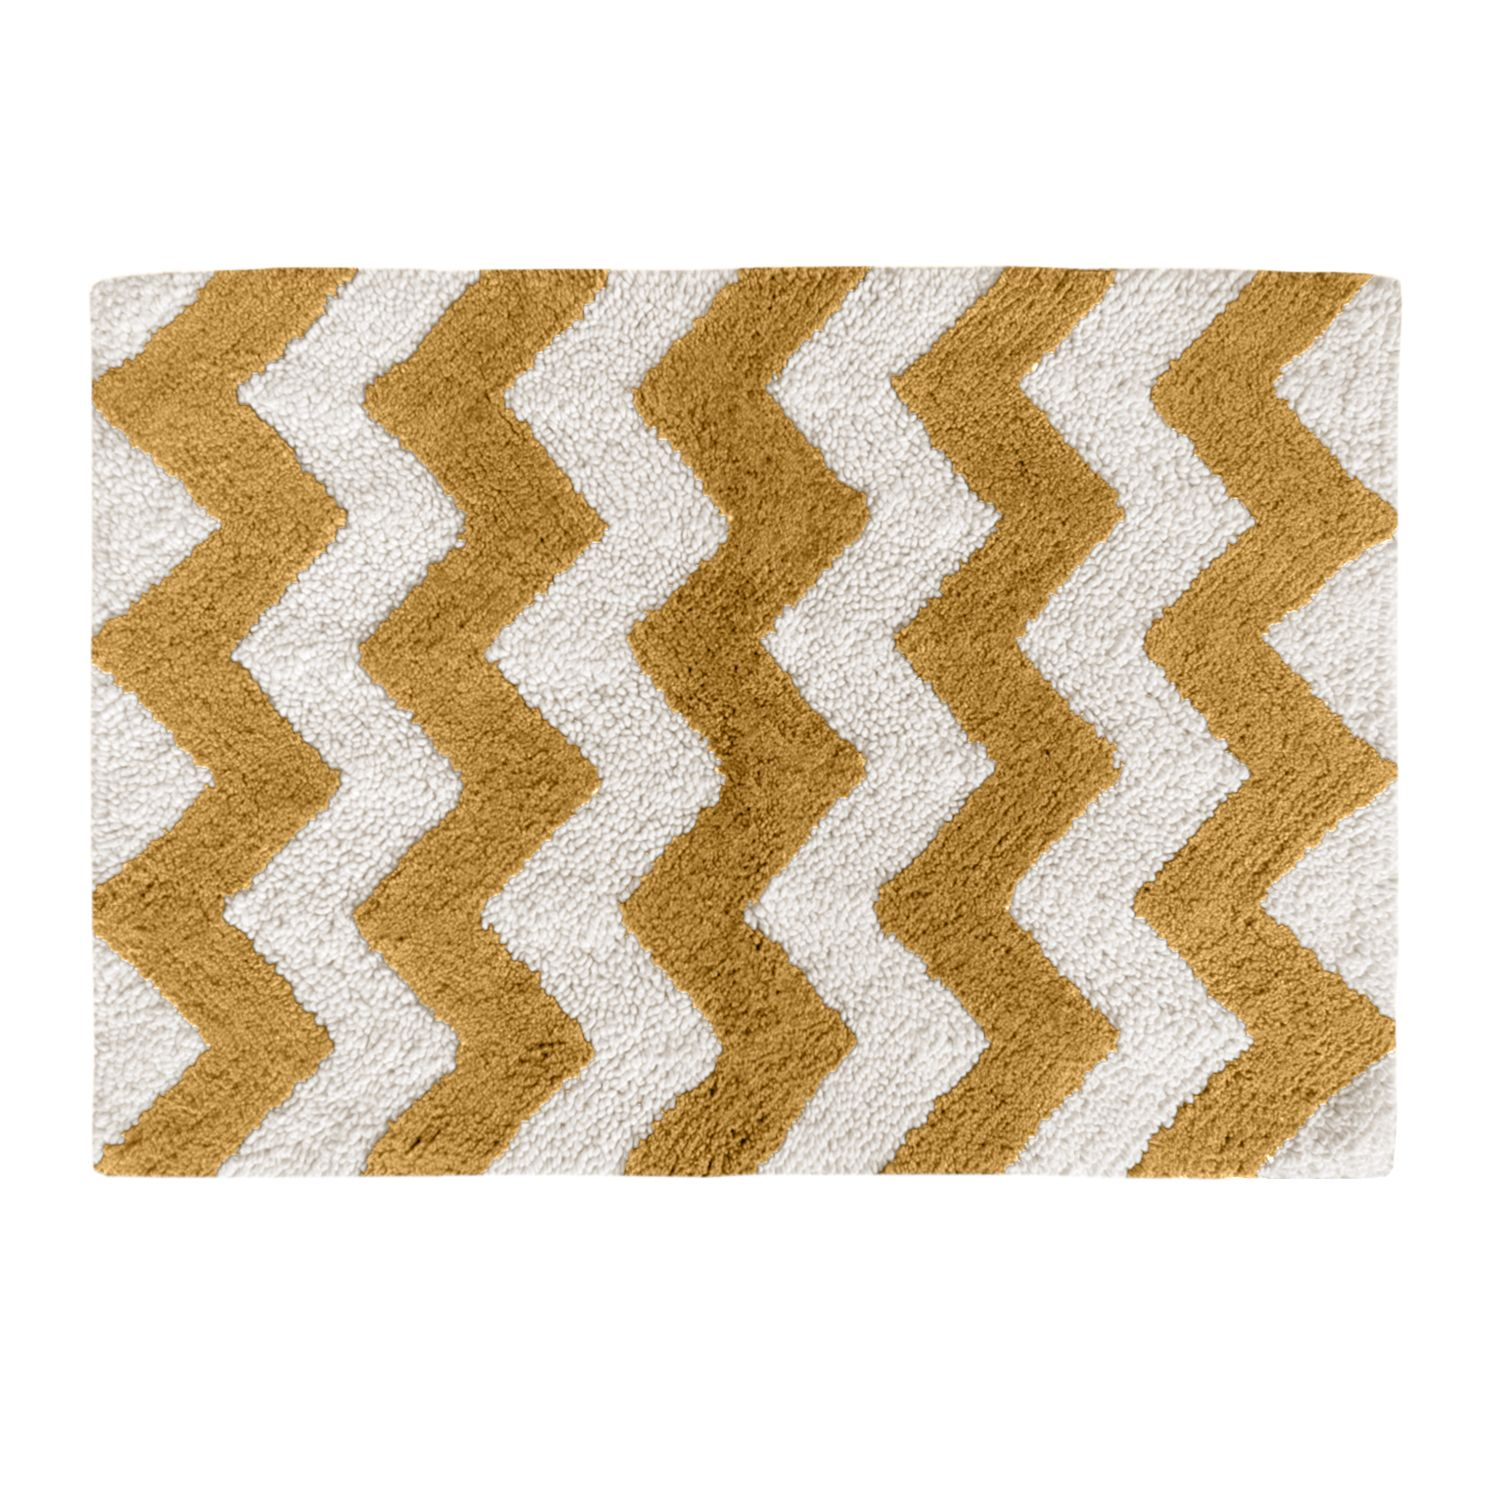 black and gold bathroom rugs. Black And Gold Bathroom Rugs In Best Of Rug Sets gold bathroom rug sets  Roselawnlutheran